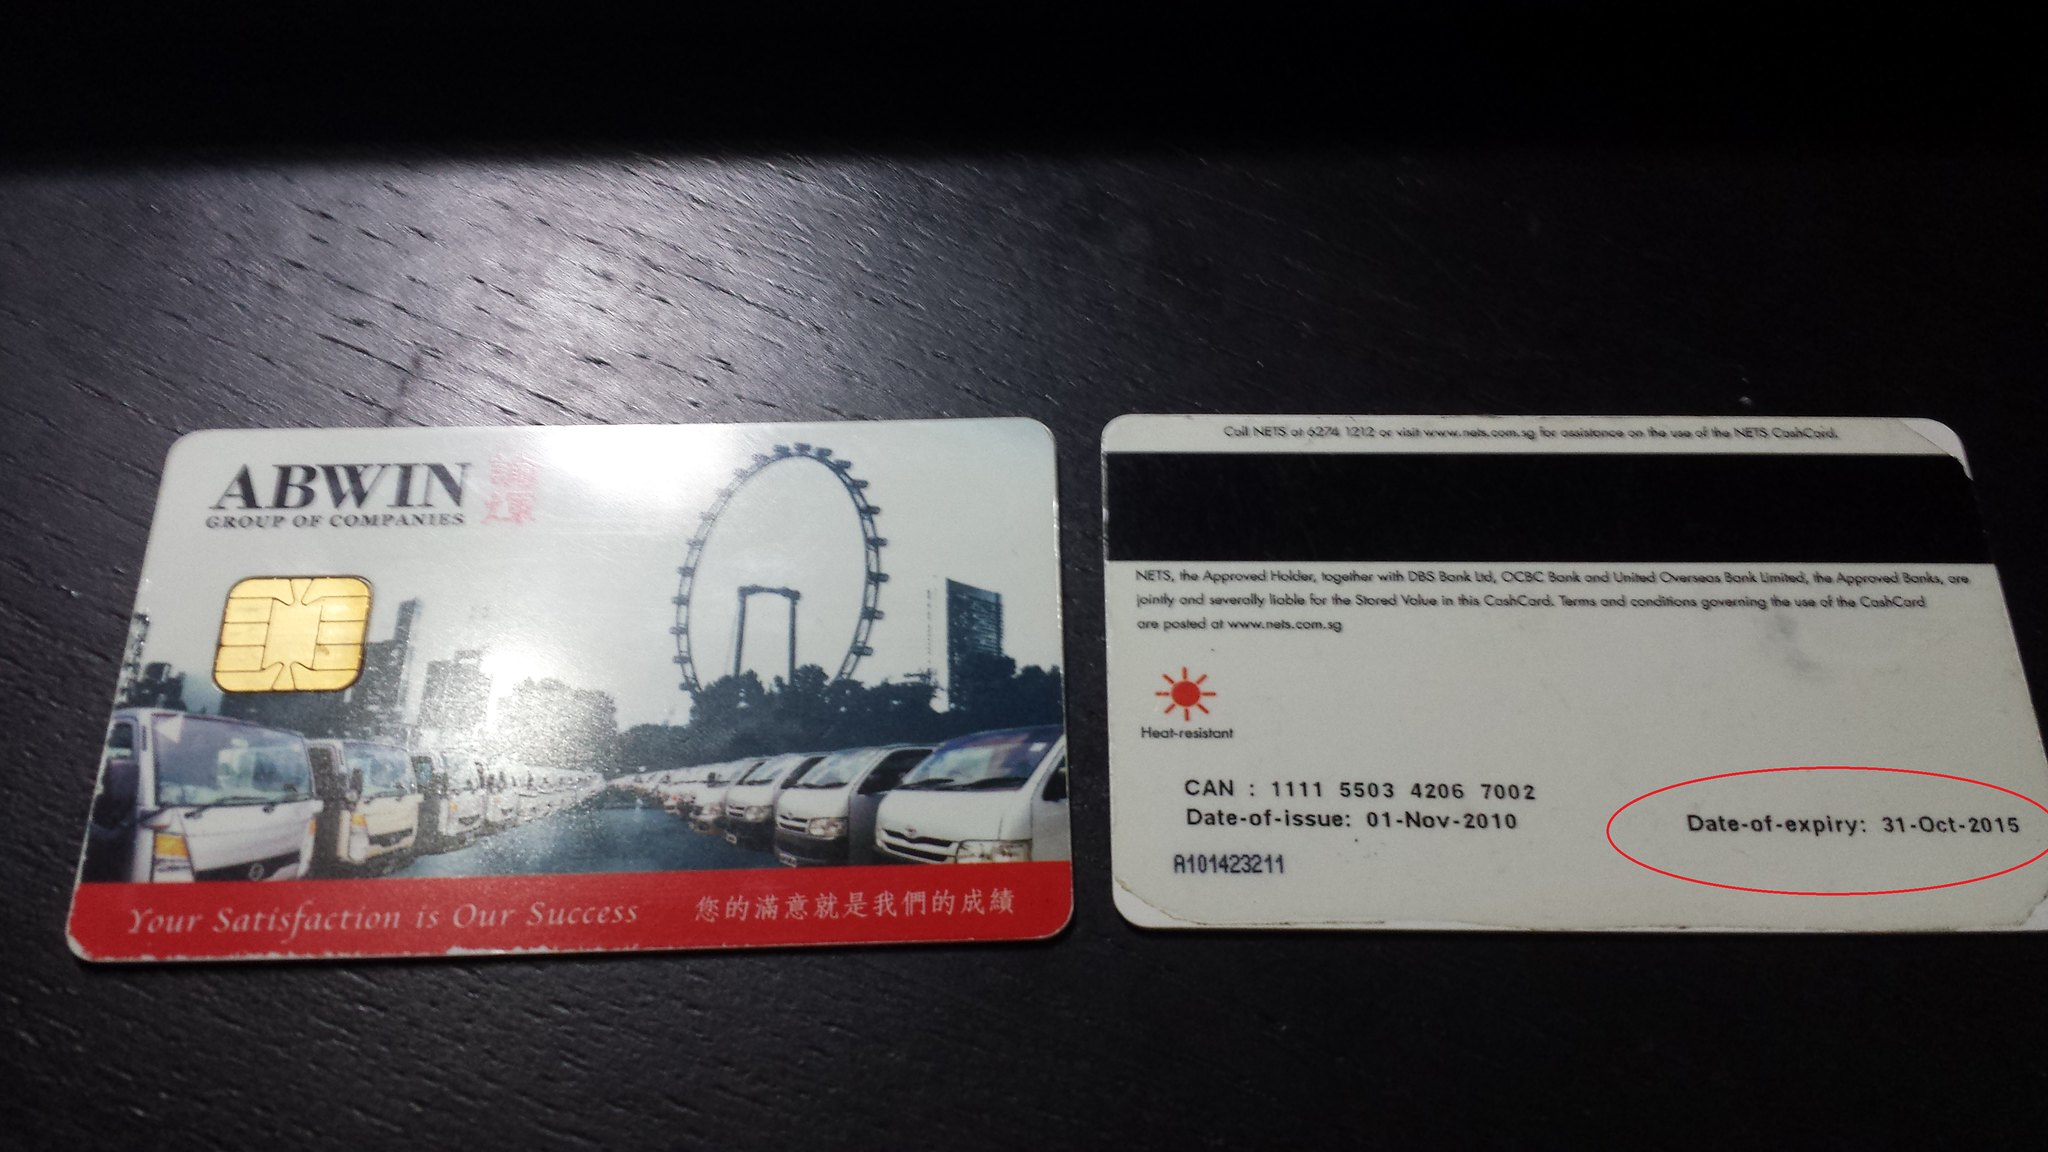 CashCard expired and cannot be used – Xiong Hui Lin's Personal page